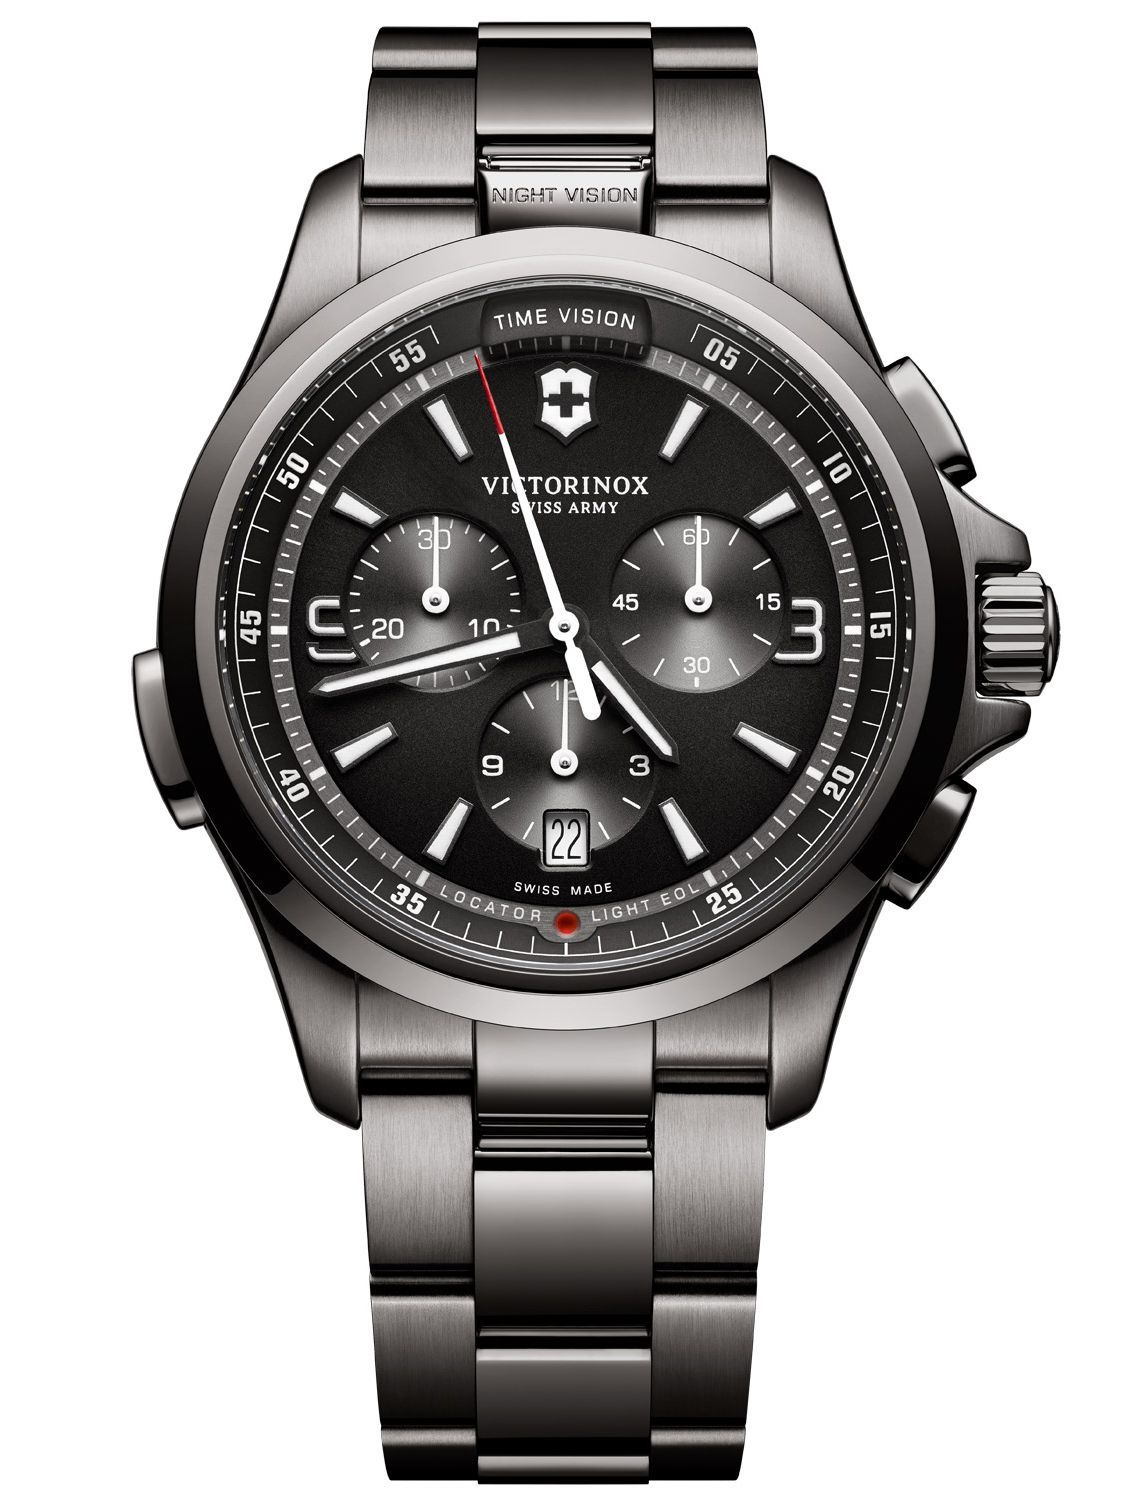 Victorinox 241730 Night Vision Chronograph Herr...